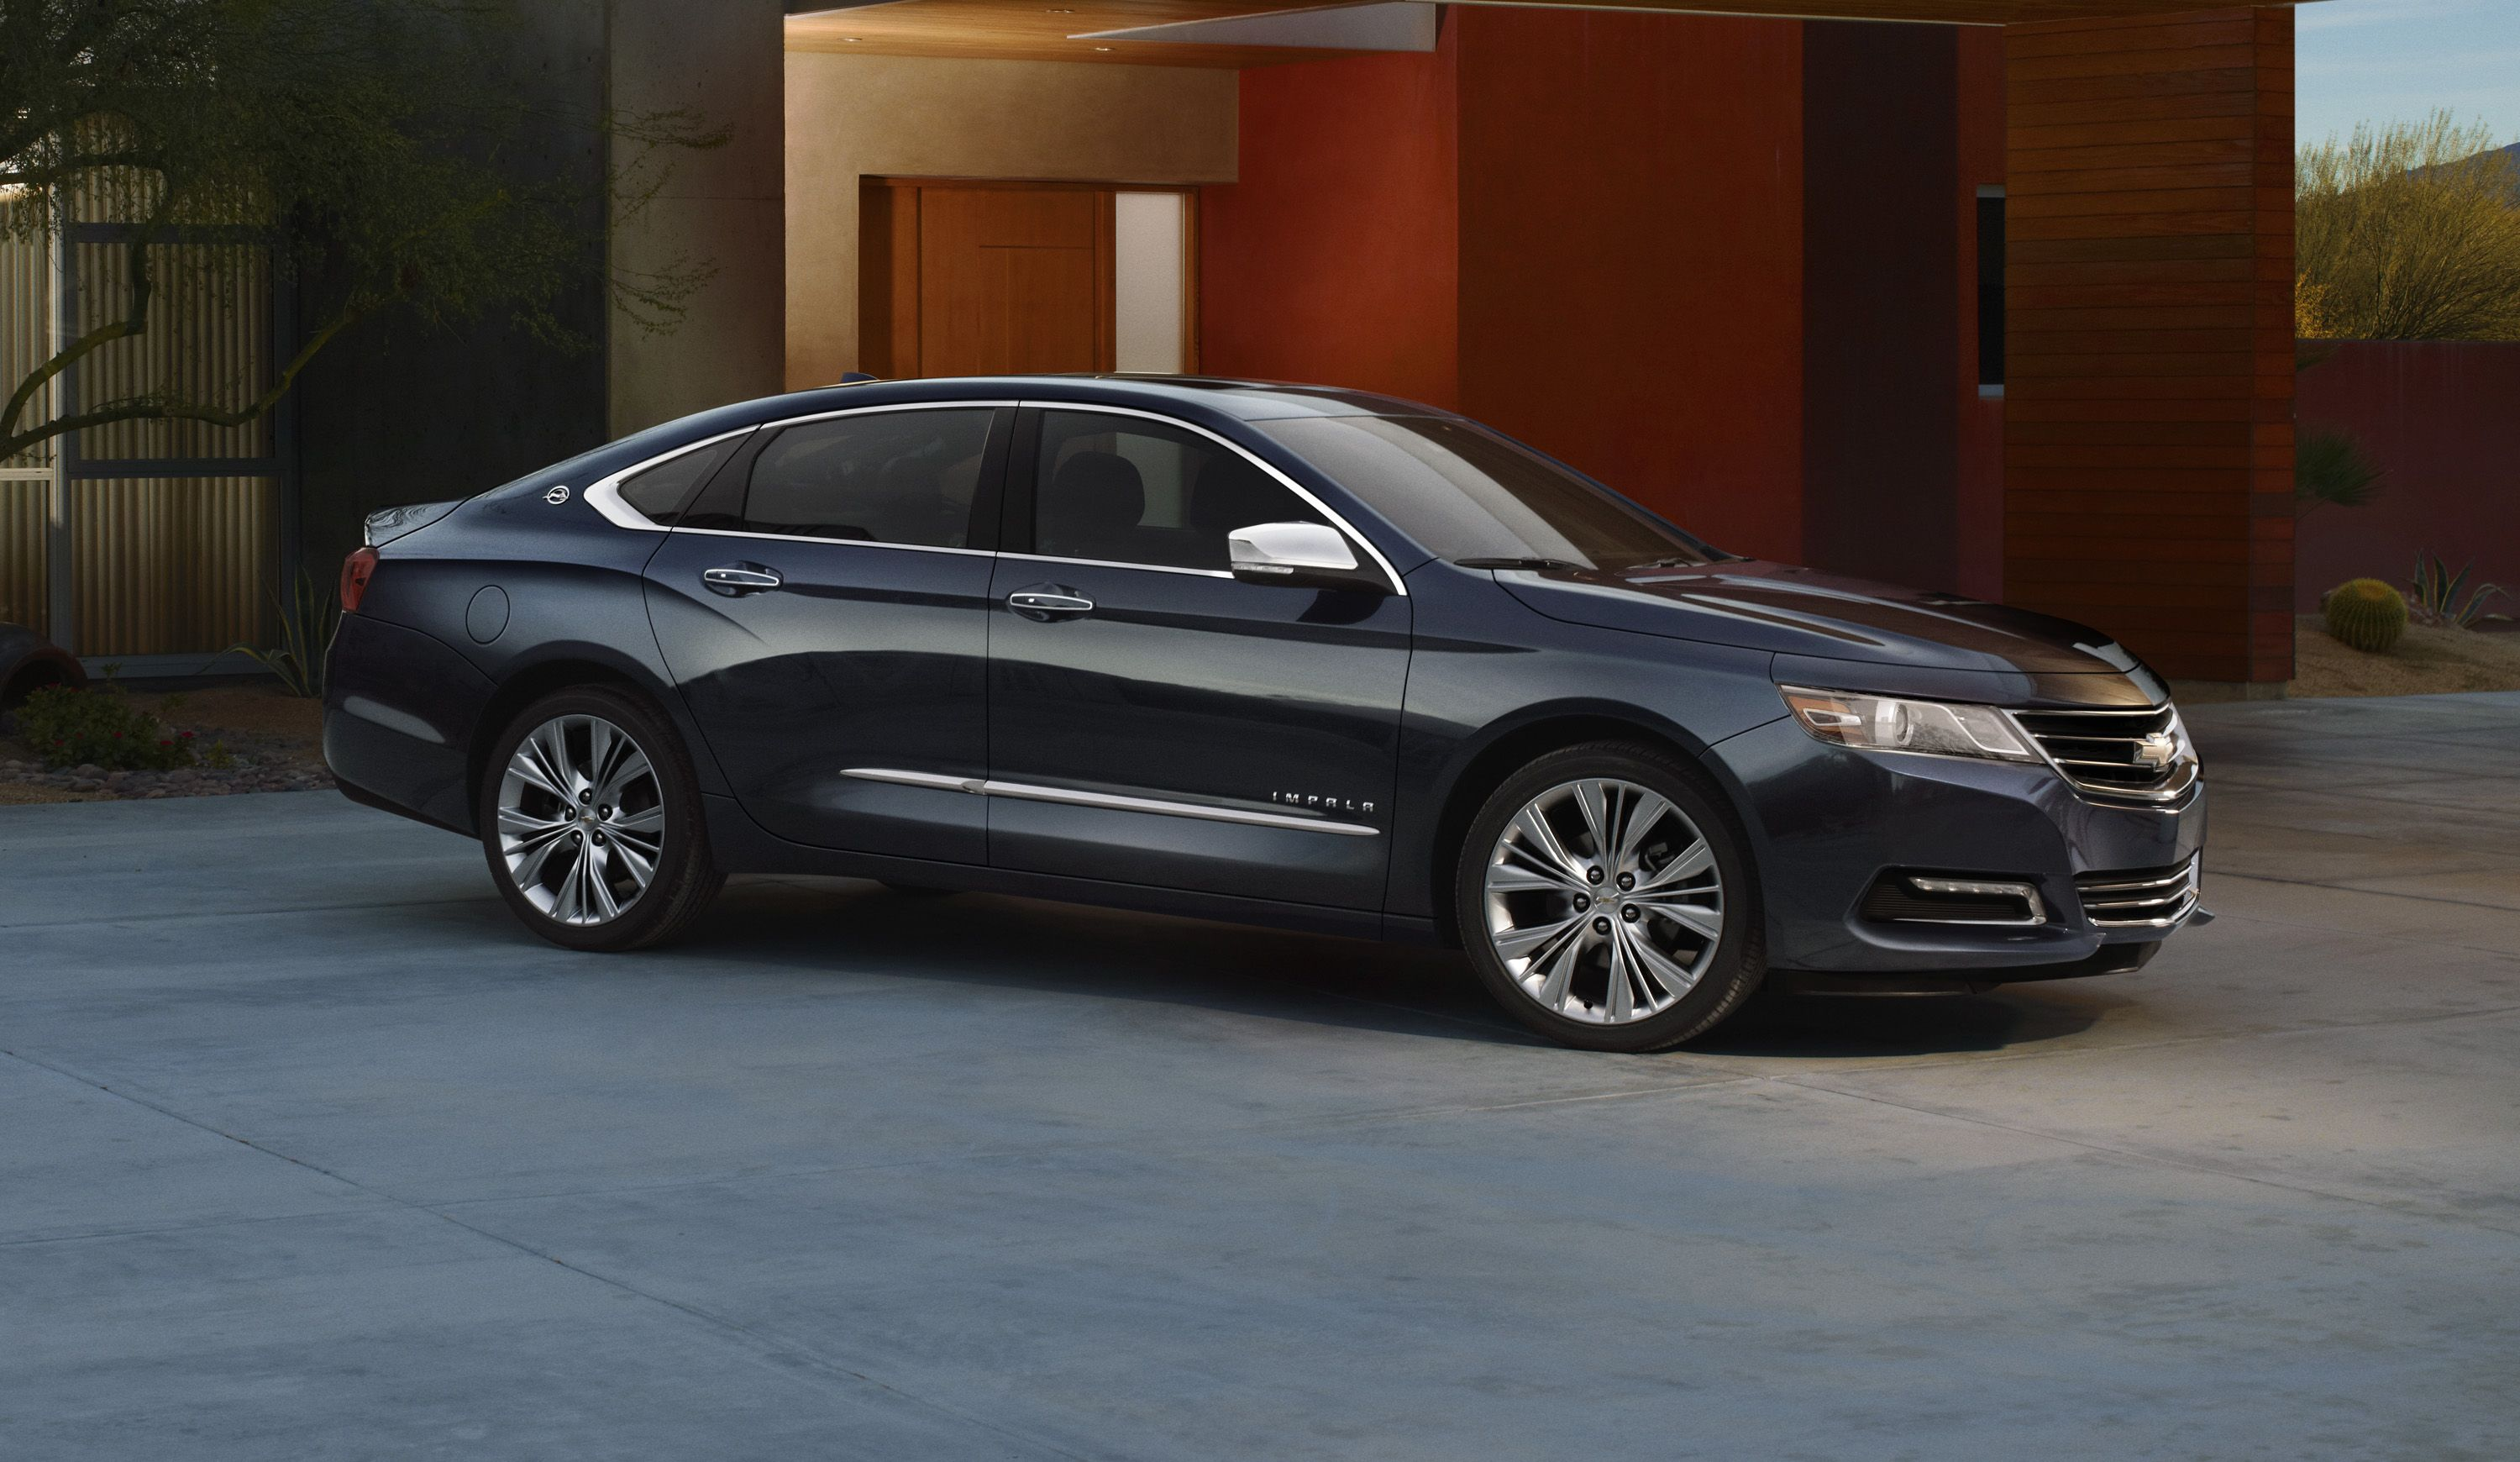 chevrolet angle style my impala g from chevy one of favorite ltz